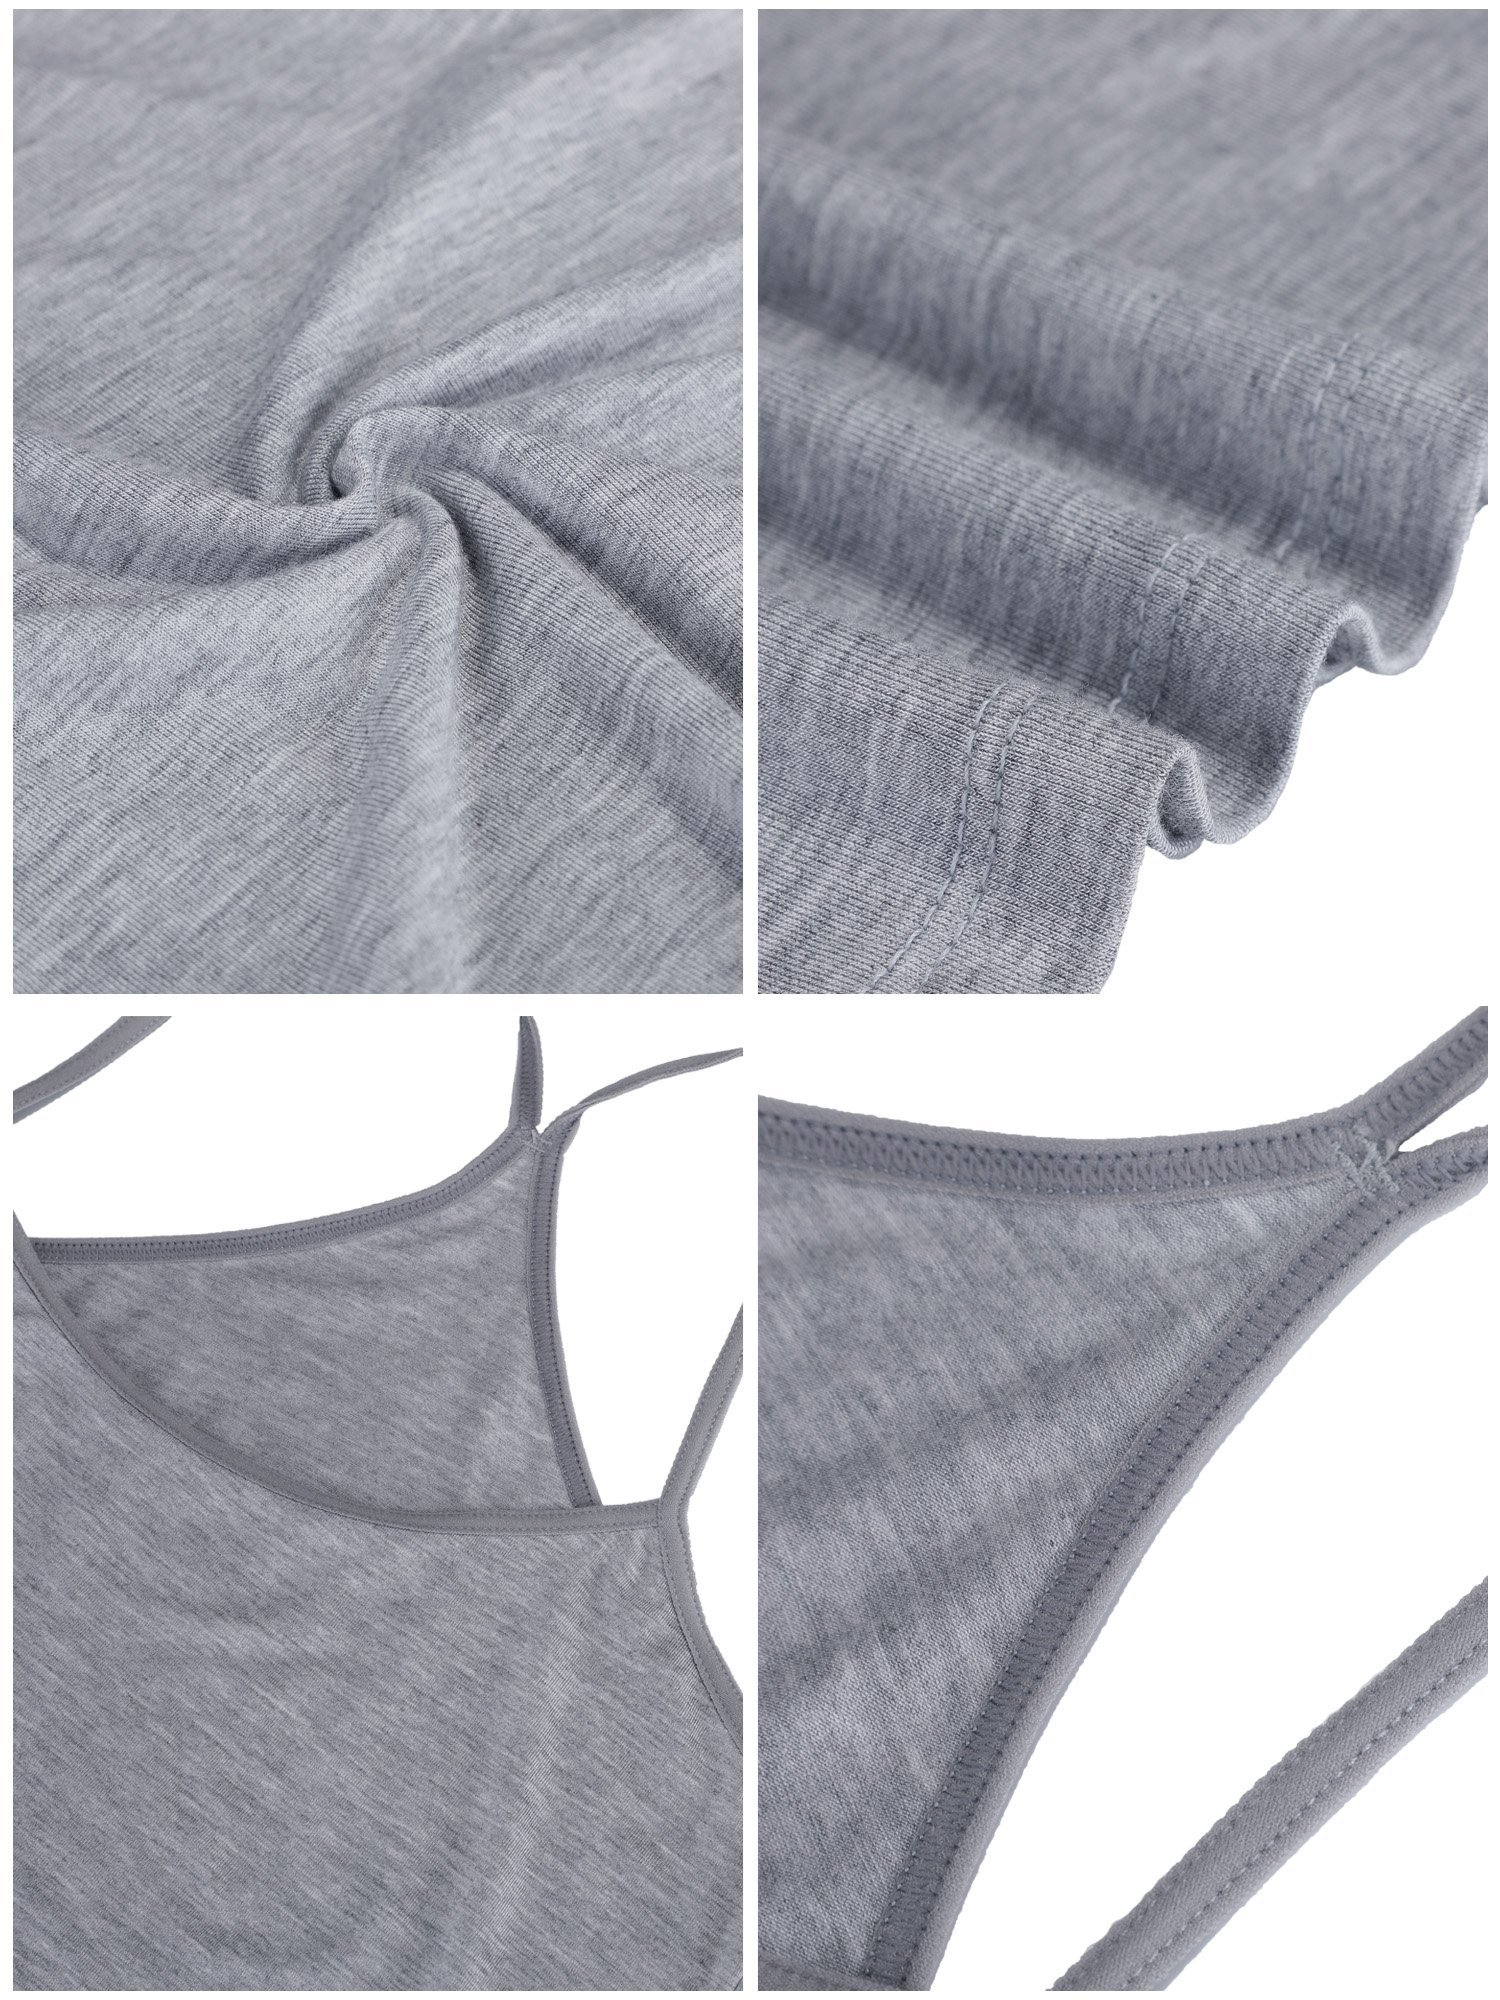 BOAO 3 Pieces Women Camisoles Seamless Basic Stretch Cami with Y-Back Spaghetti Strap Tank Tops, 3 Colors (M Size) by BOAO (Image #7)